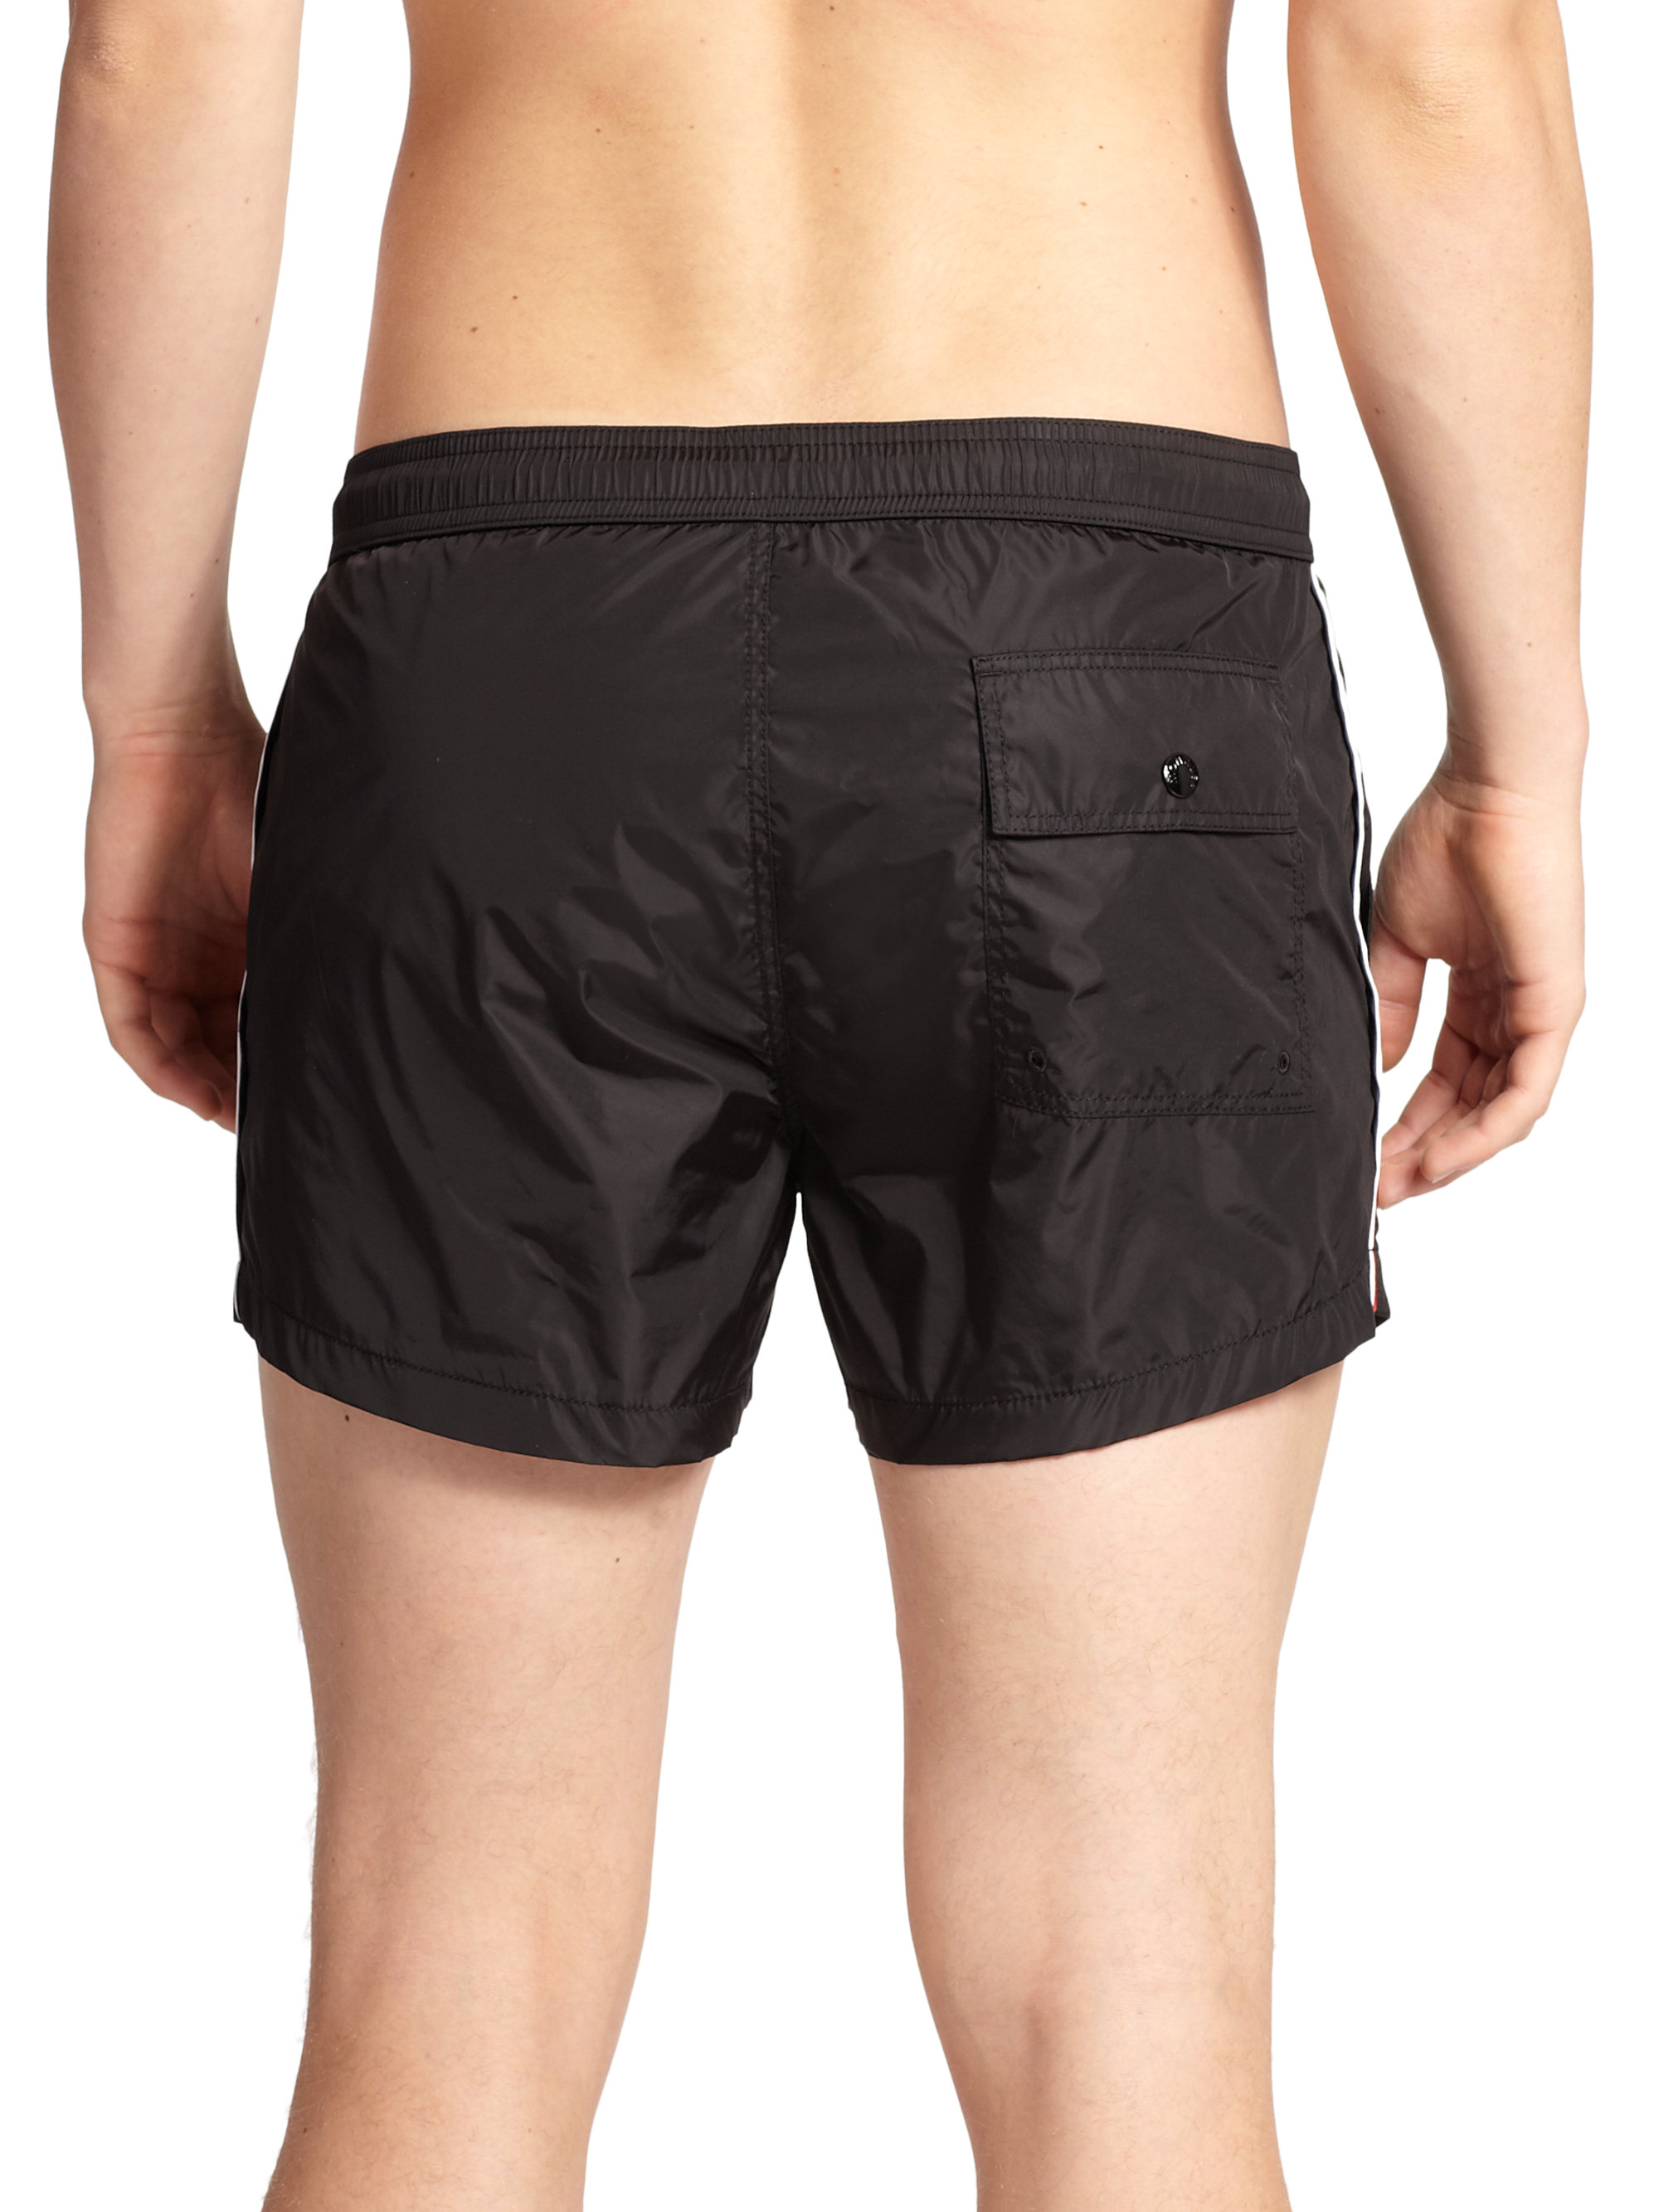 swim shorts - Black Moncler From China Free Shipping Low Price Z9J6mMndEe